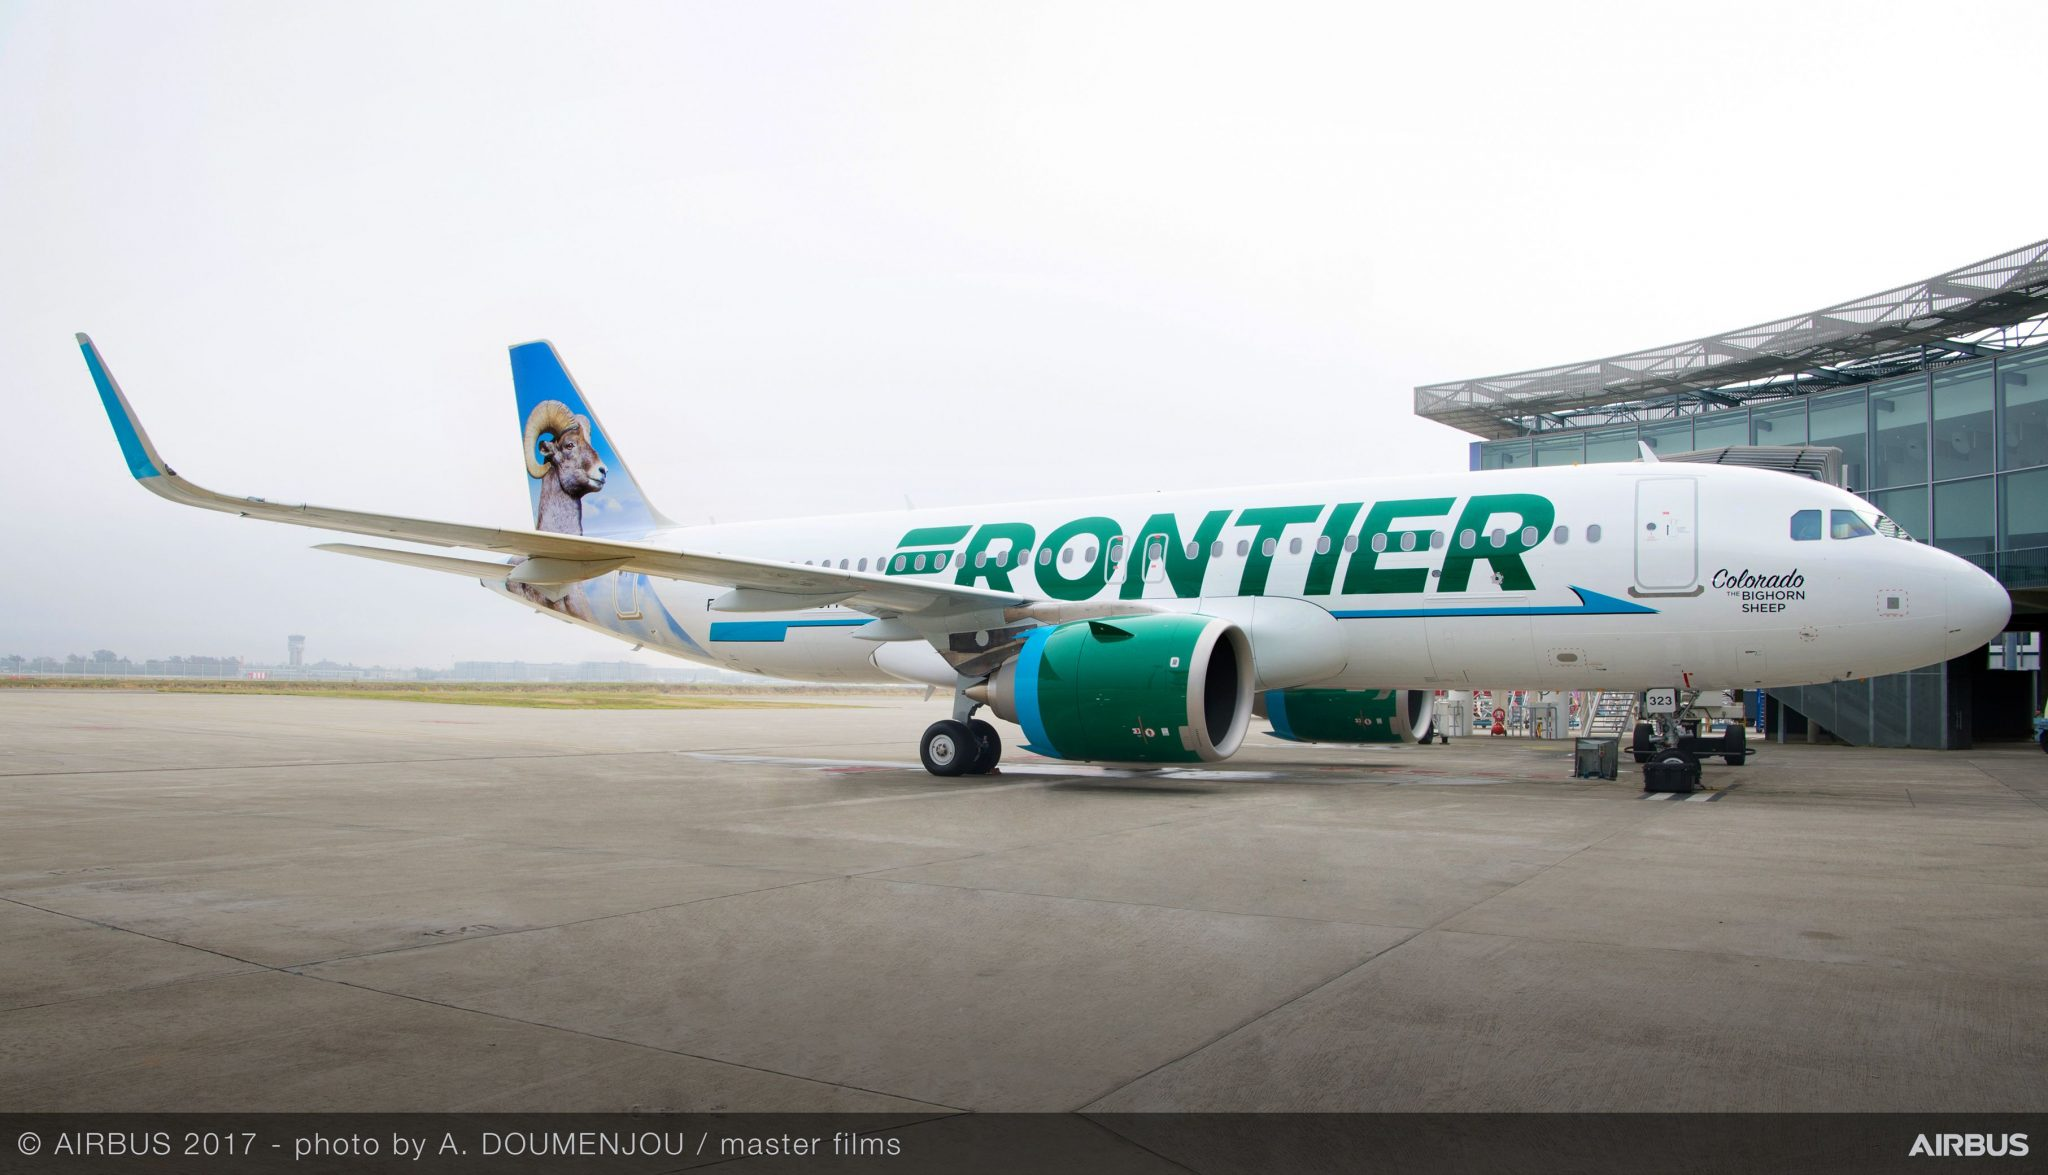 US carrier Frontier converts A320neo batch to A321neos